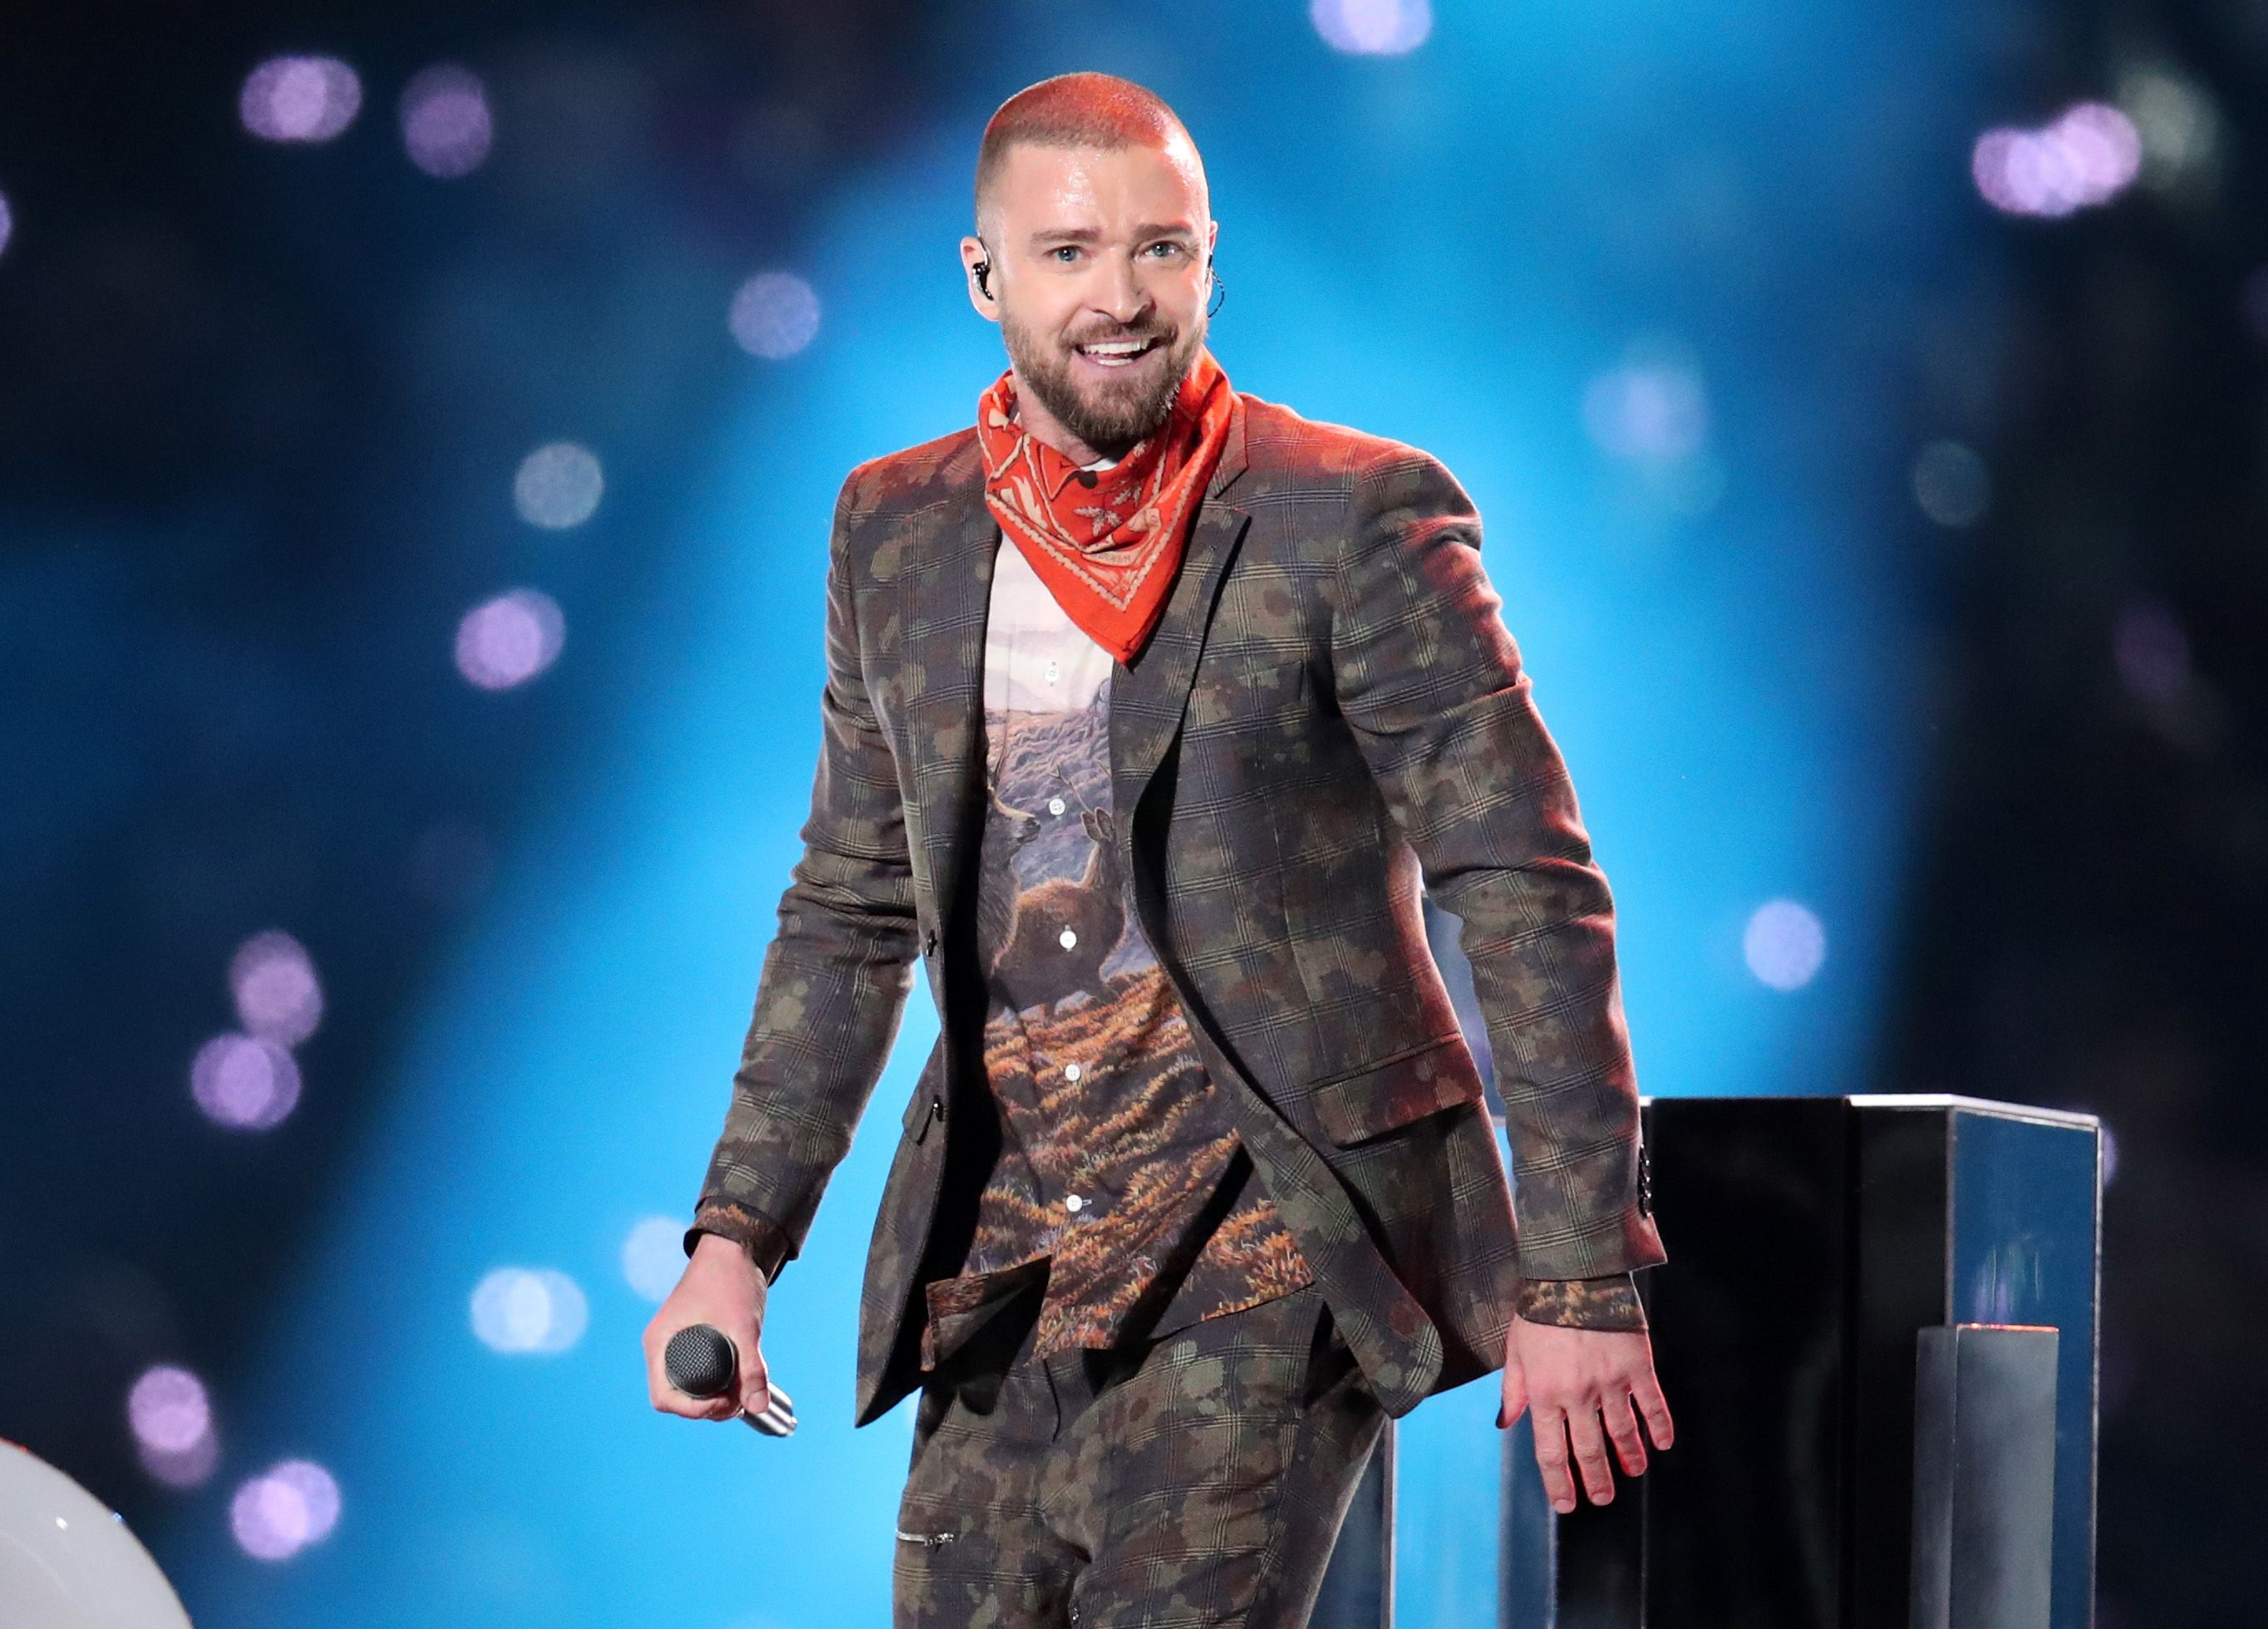 Justin Timberlake's Net Worth - How Did Justin Timberlake Get So Rich?